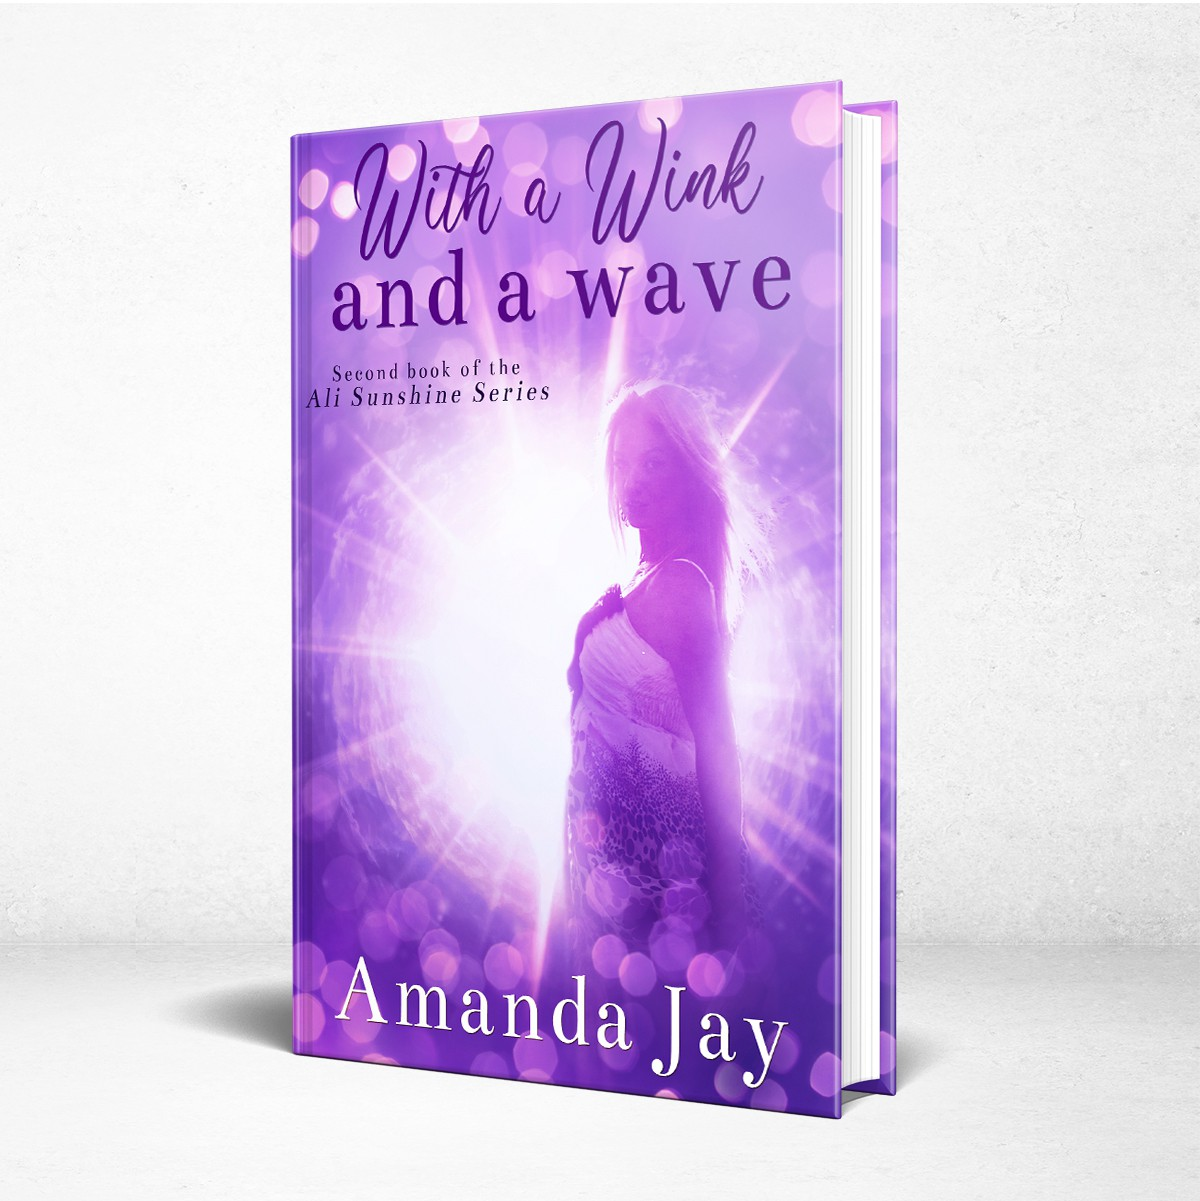 Second book of the Ali Sunshine Series